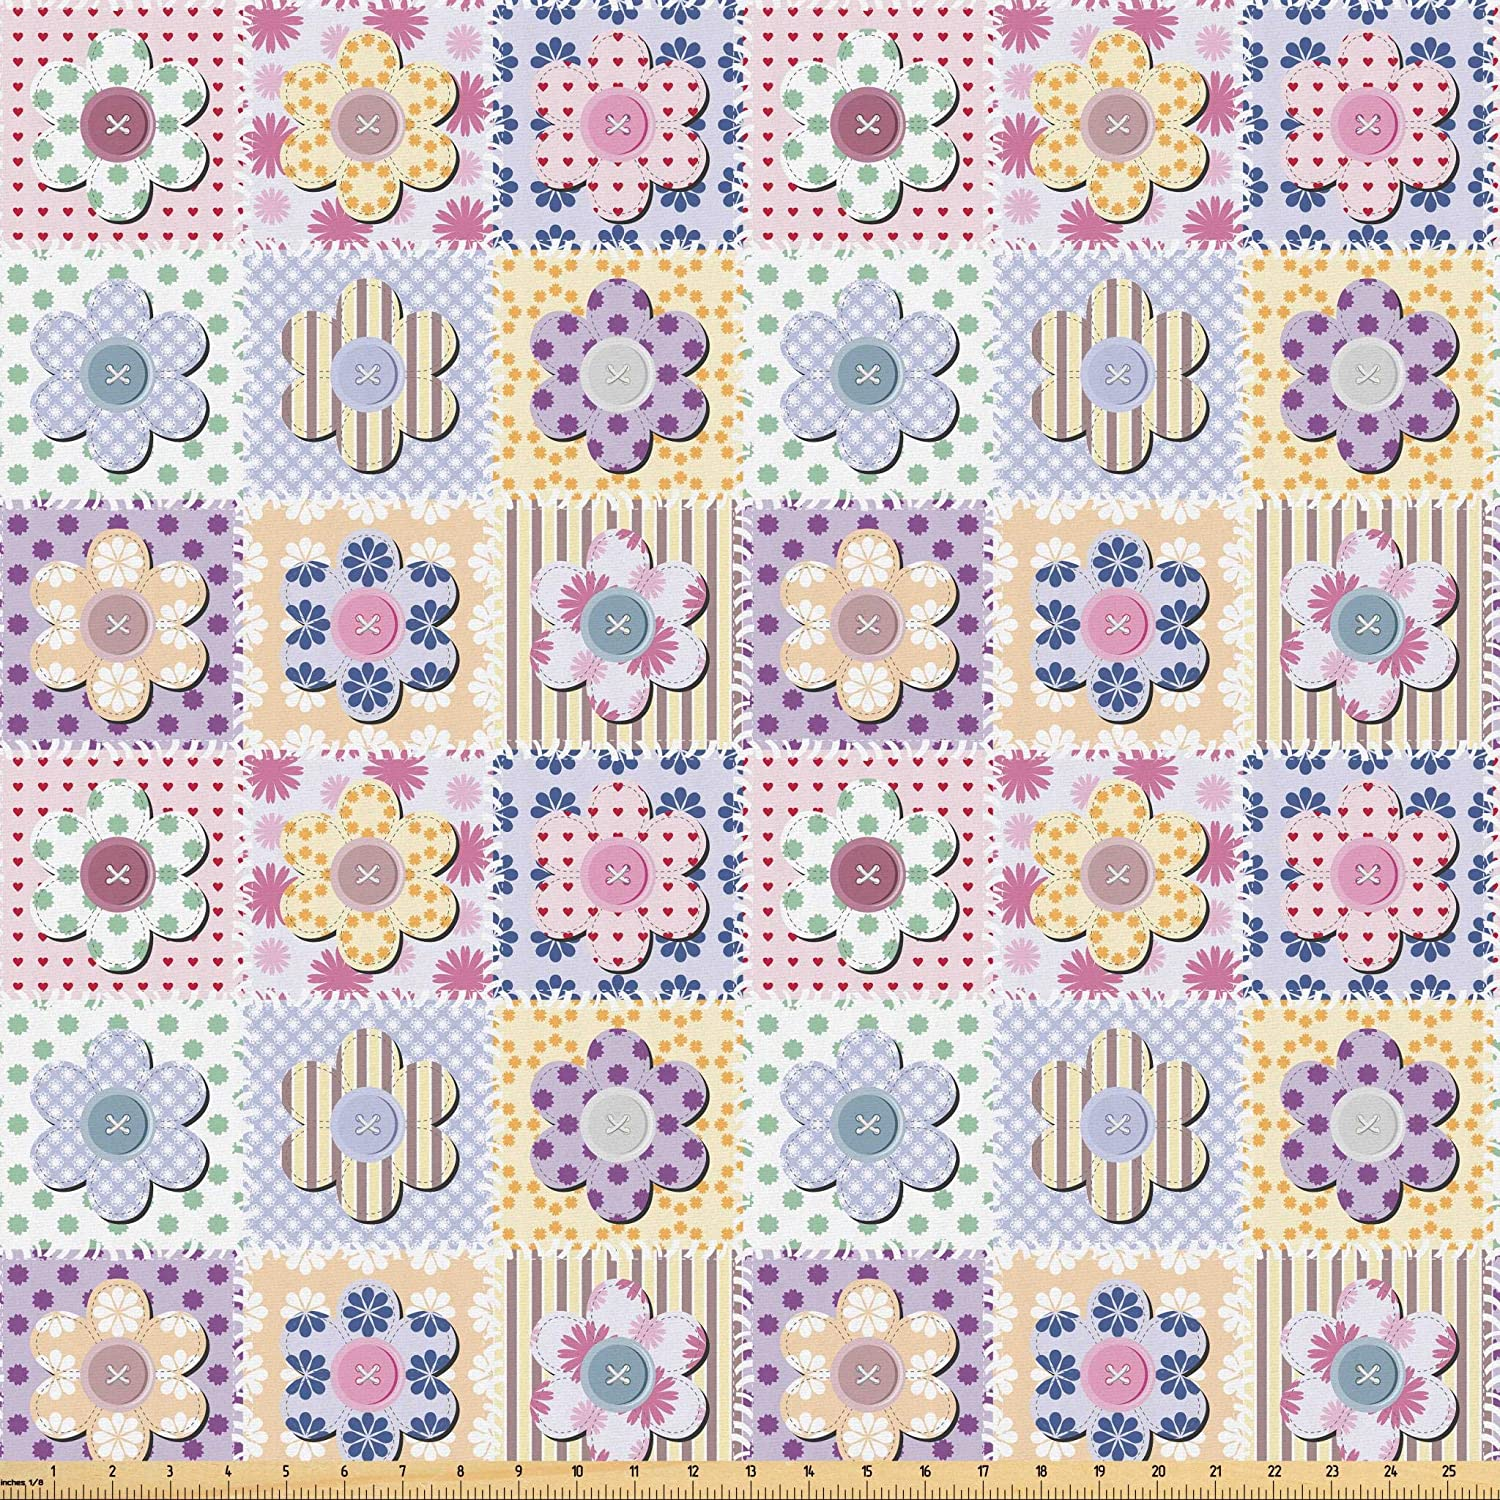 Lunarable Cabin Fabric by The Yard, Arts and Crafts Theme Handiwork Quilting Stitches Daisy Motifs Sewing Image Print, Microfiber Fabric for Arts and Crafts Textiles & Decor, 3 Yards, Pale Mauve